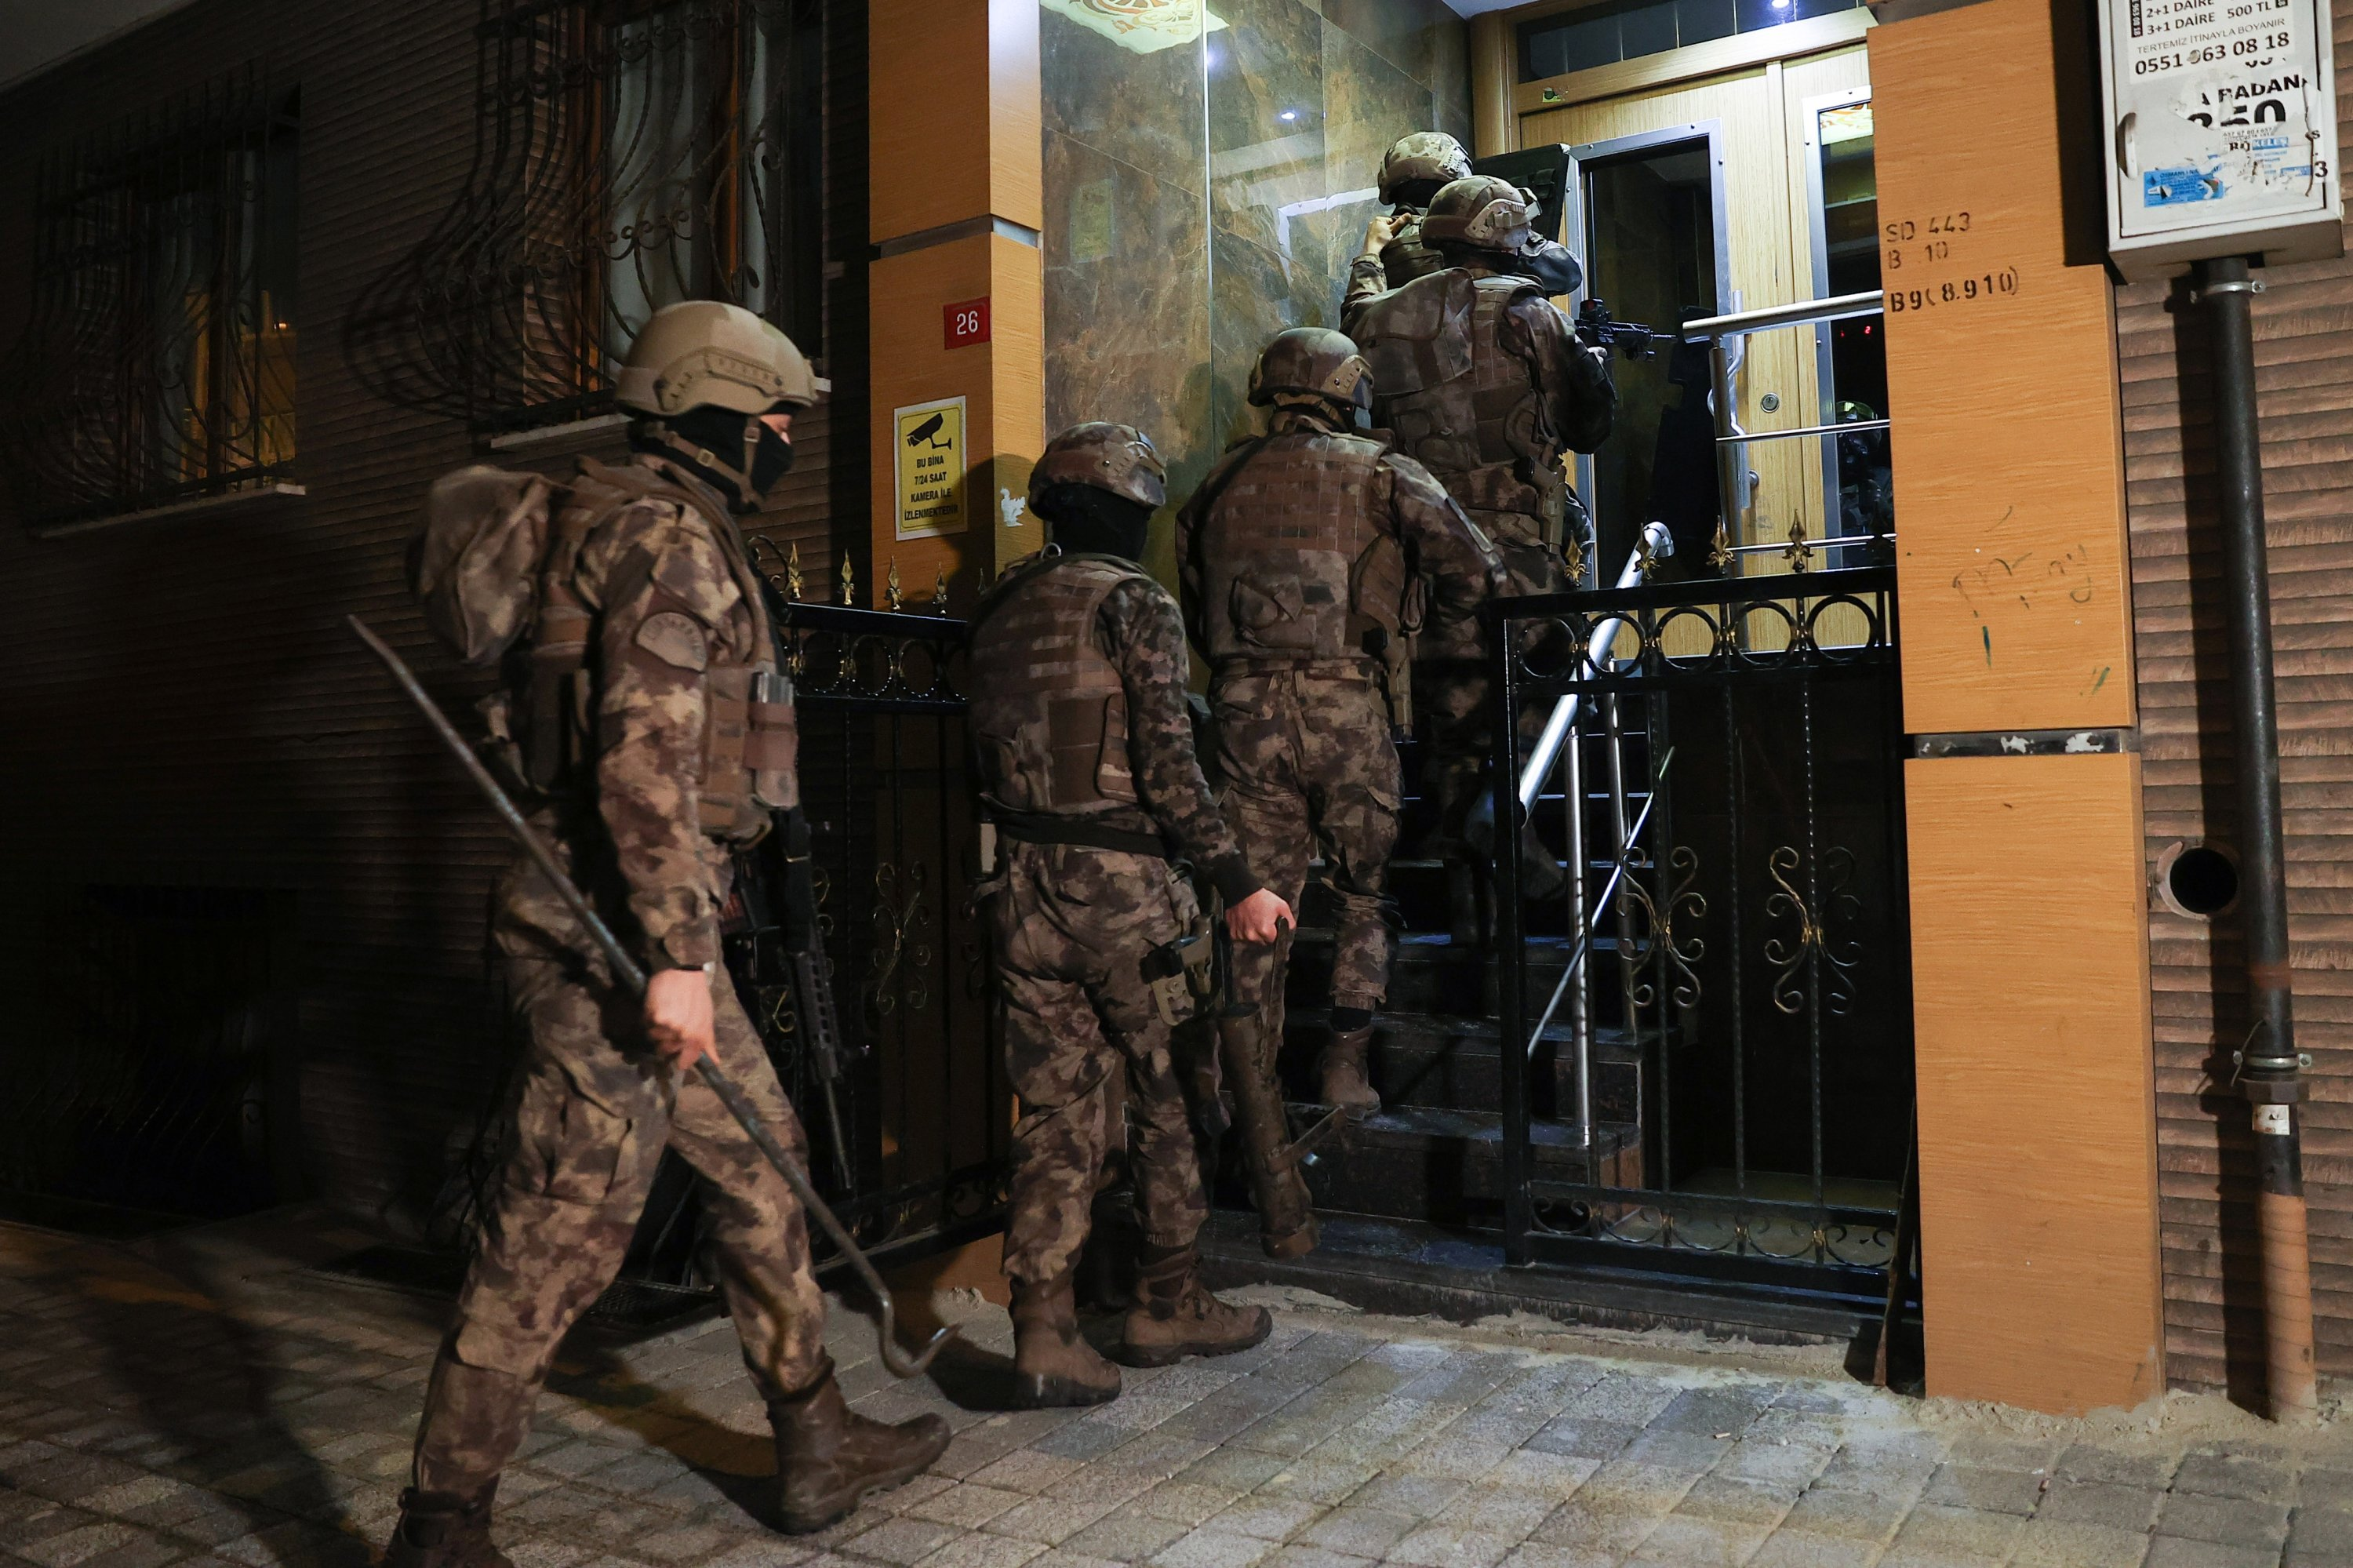 A Special Operations team raids a house to capture a suspect, in Istanbul, Turkey, April 9, 2021. (AA PHOTO)